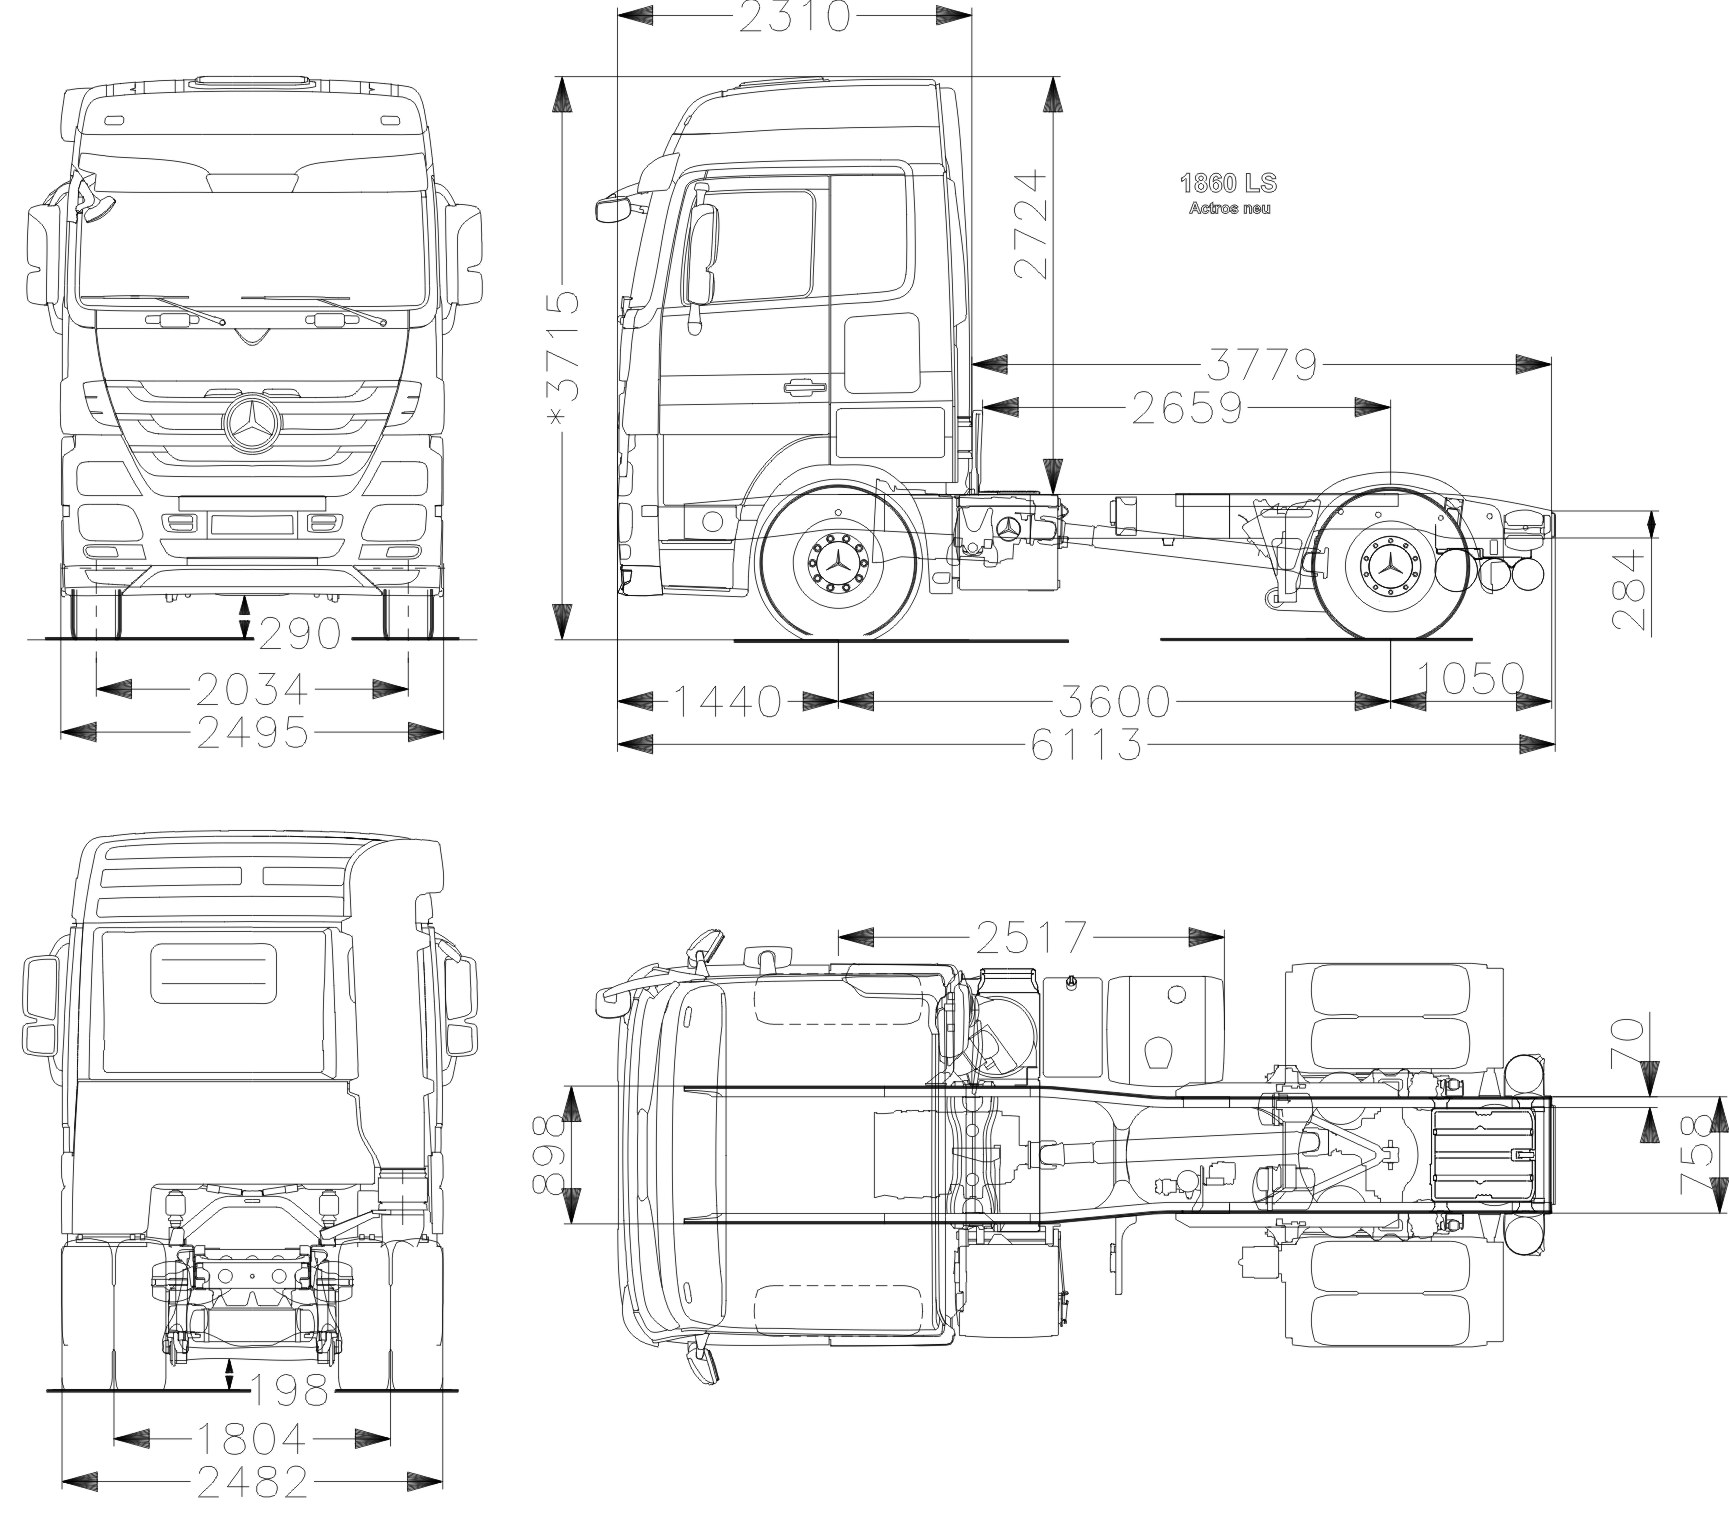 Truck Coloring Pages likewise 514 Floral And Geometric Patterns as well Kipper Beladen Mit Sand as well Meritor Wabco Air Brake Modulator Valves Dangerous likewise John Deere. on mercedes tractor